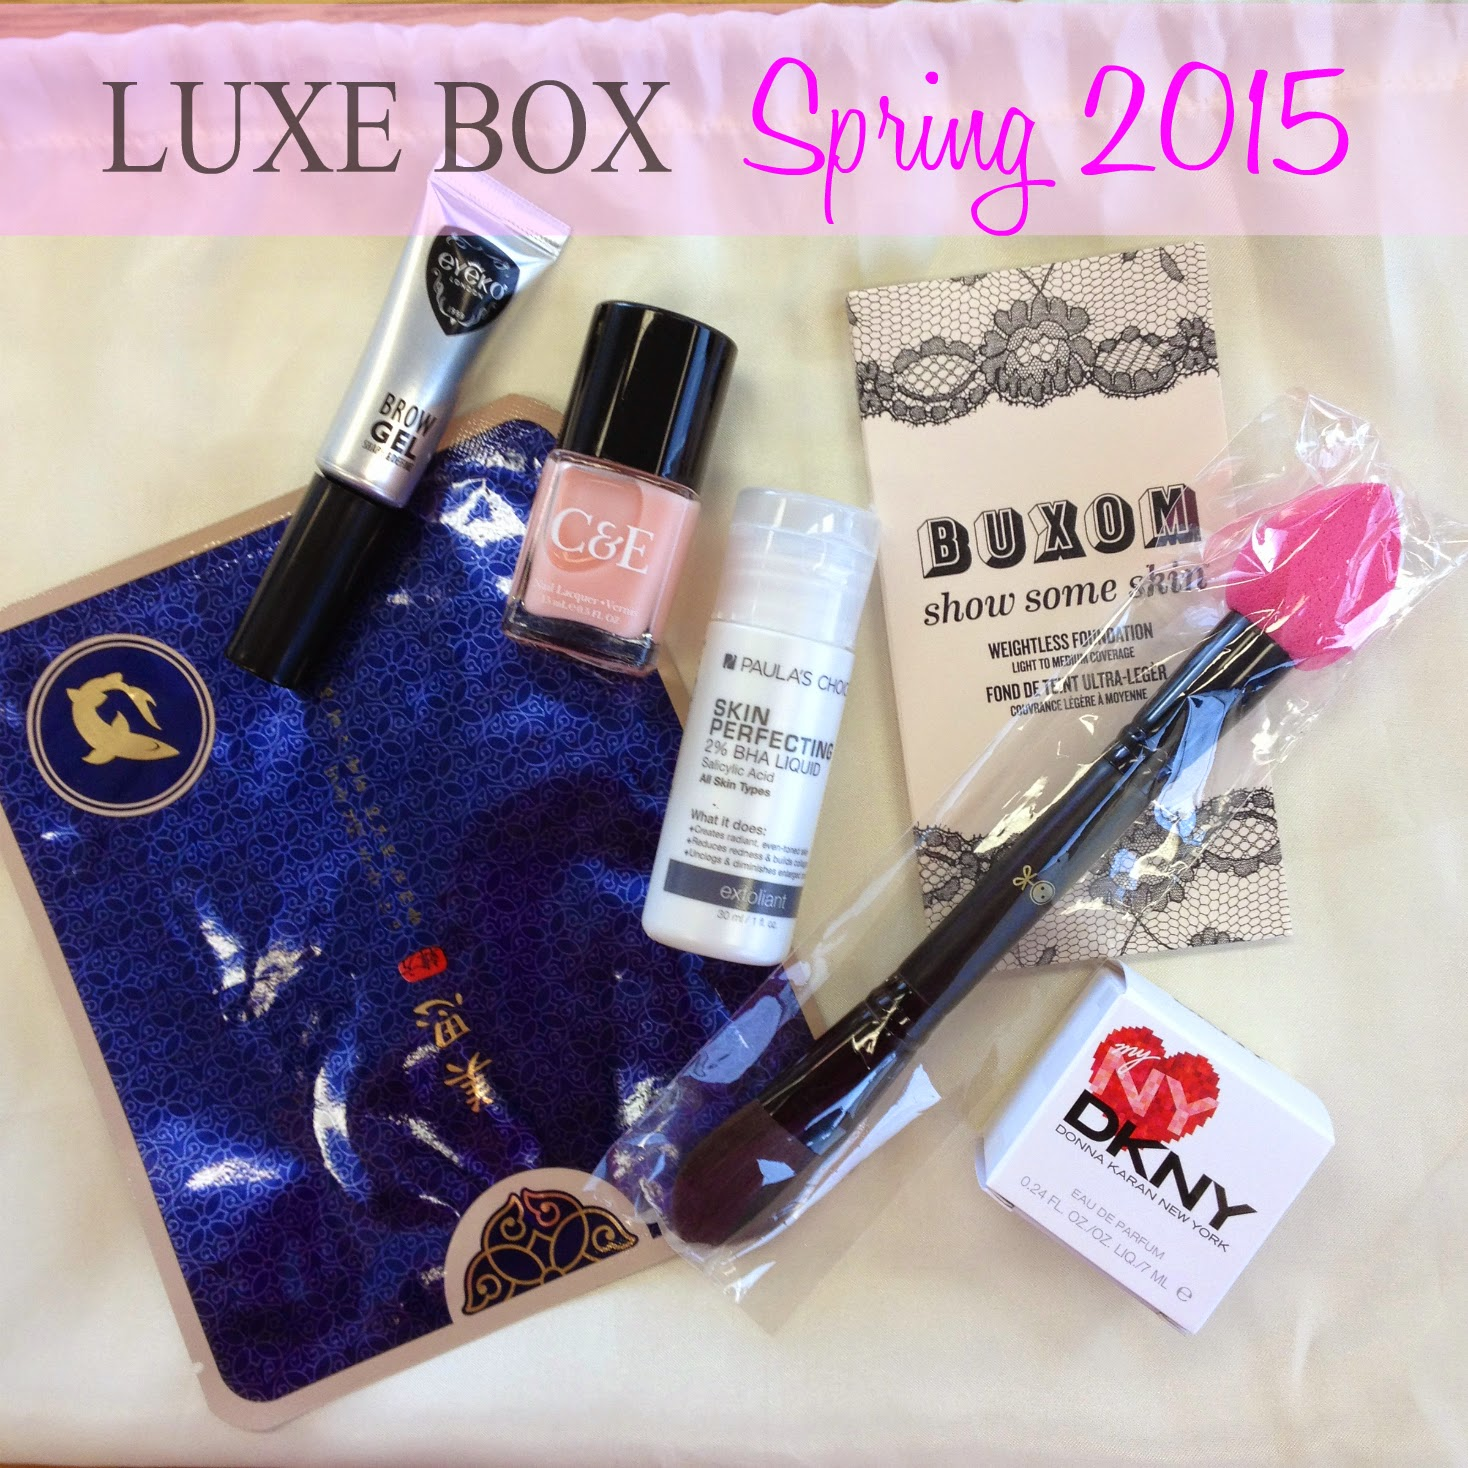 Luxe Box Spring 2015